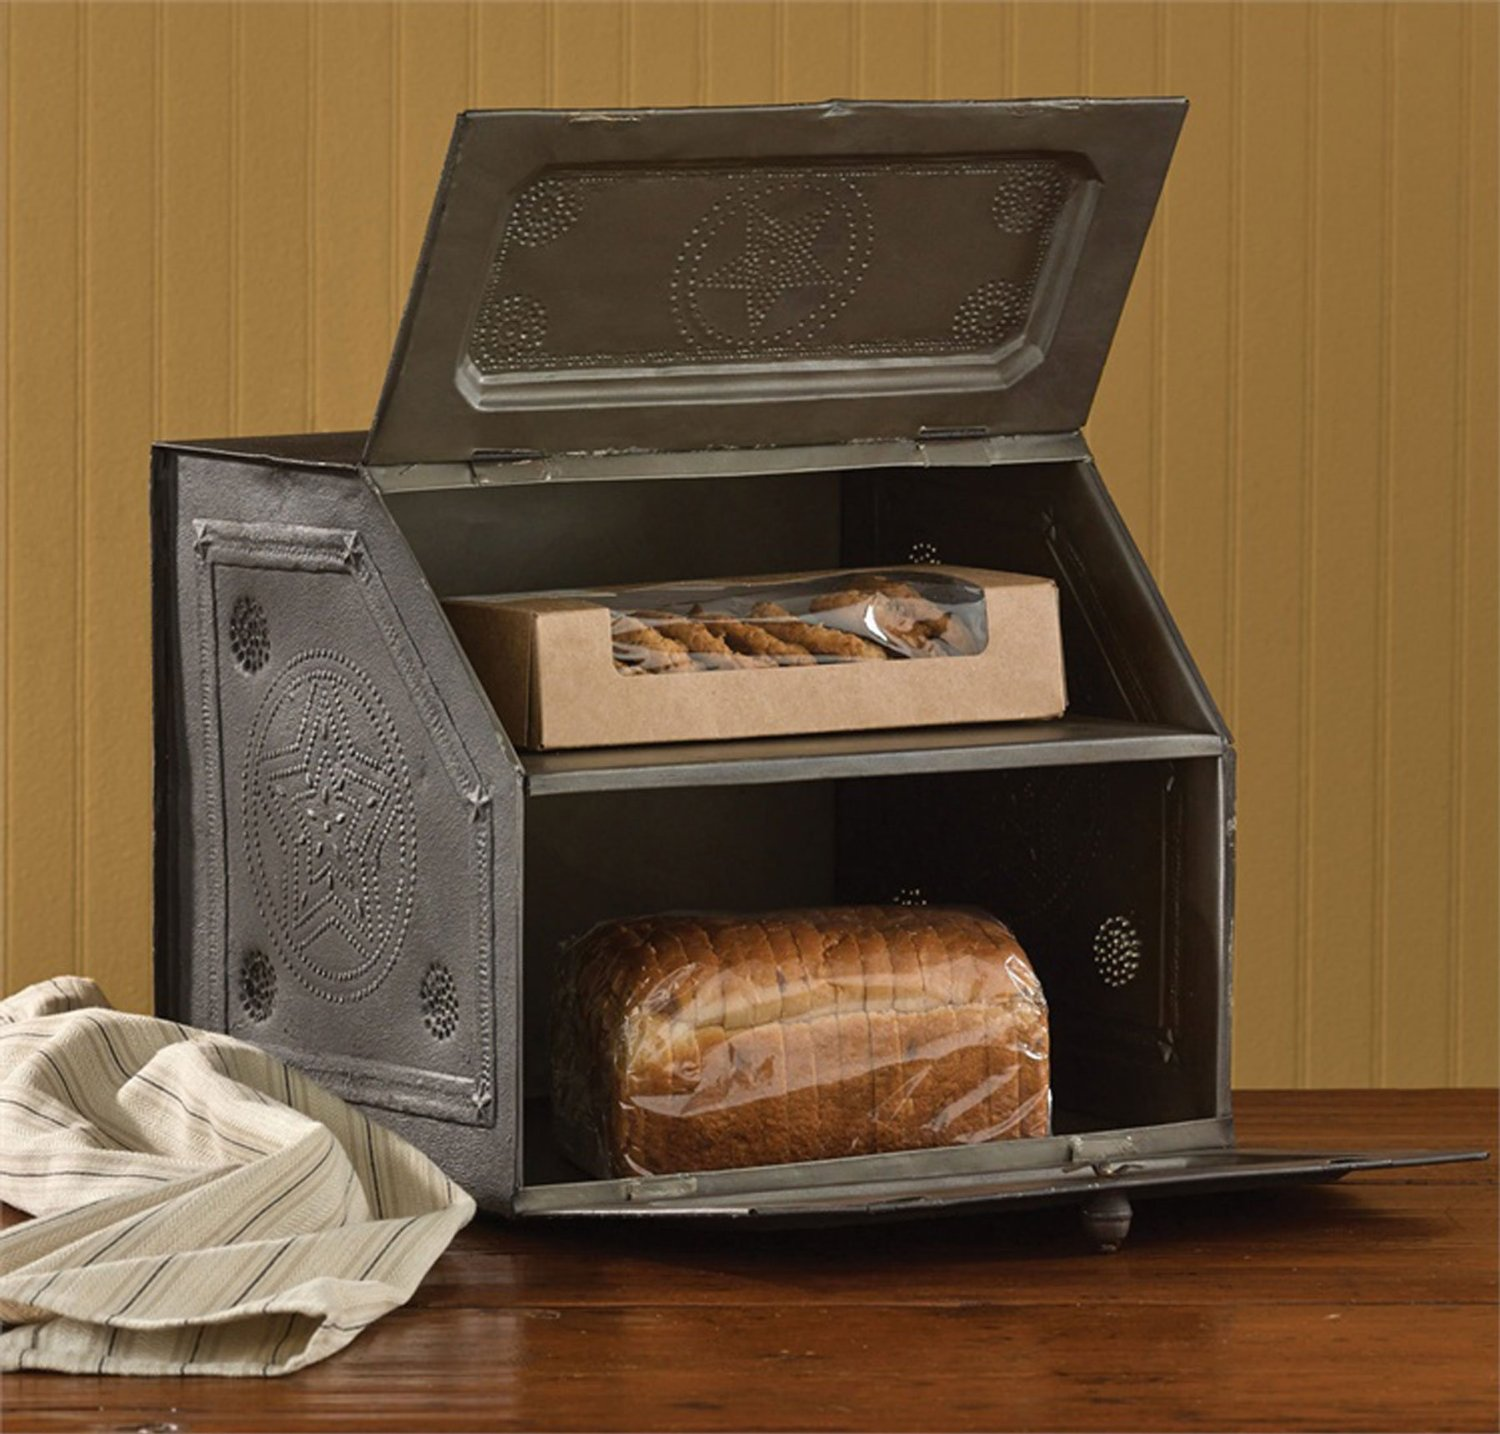 Top 12 Types Of Bread Boxes